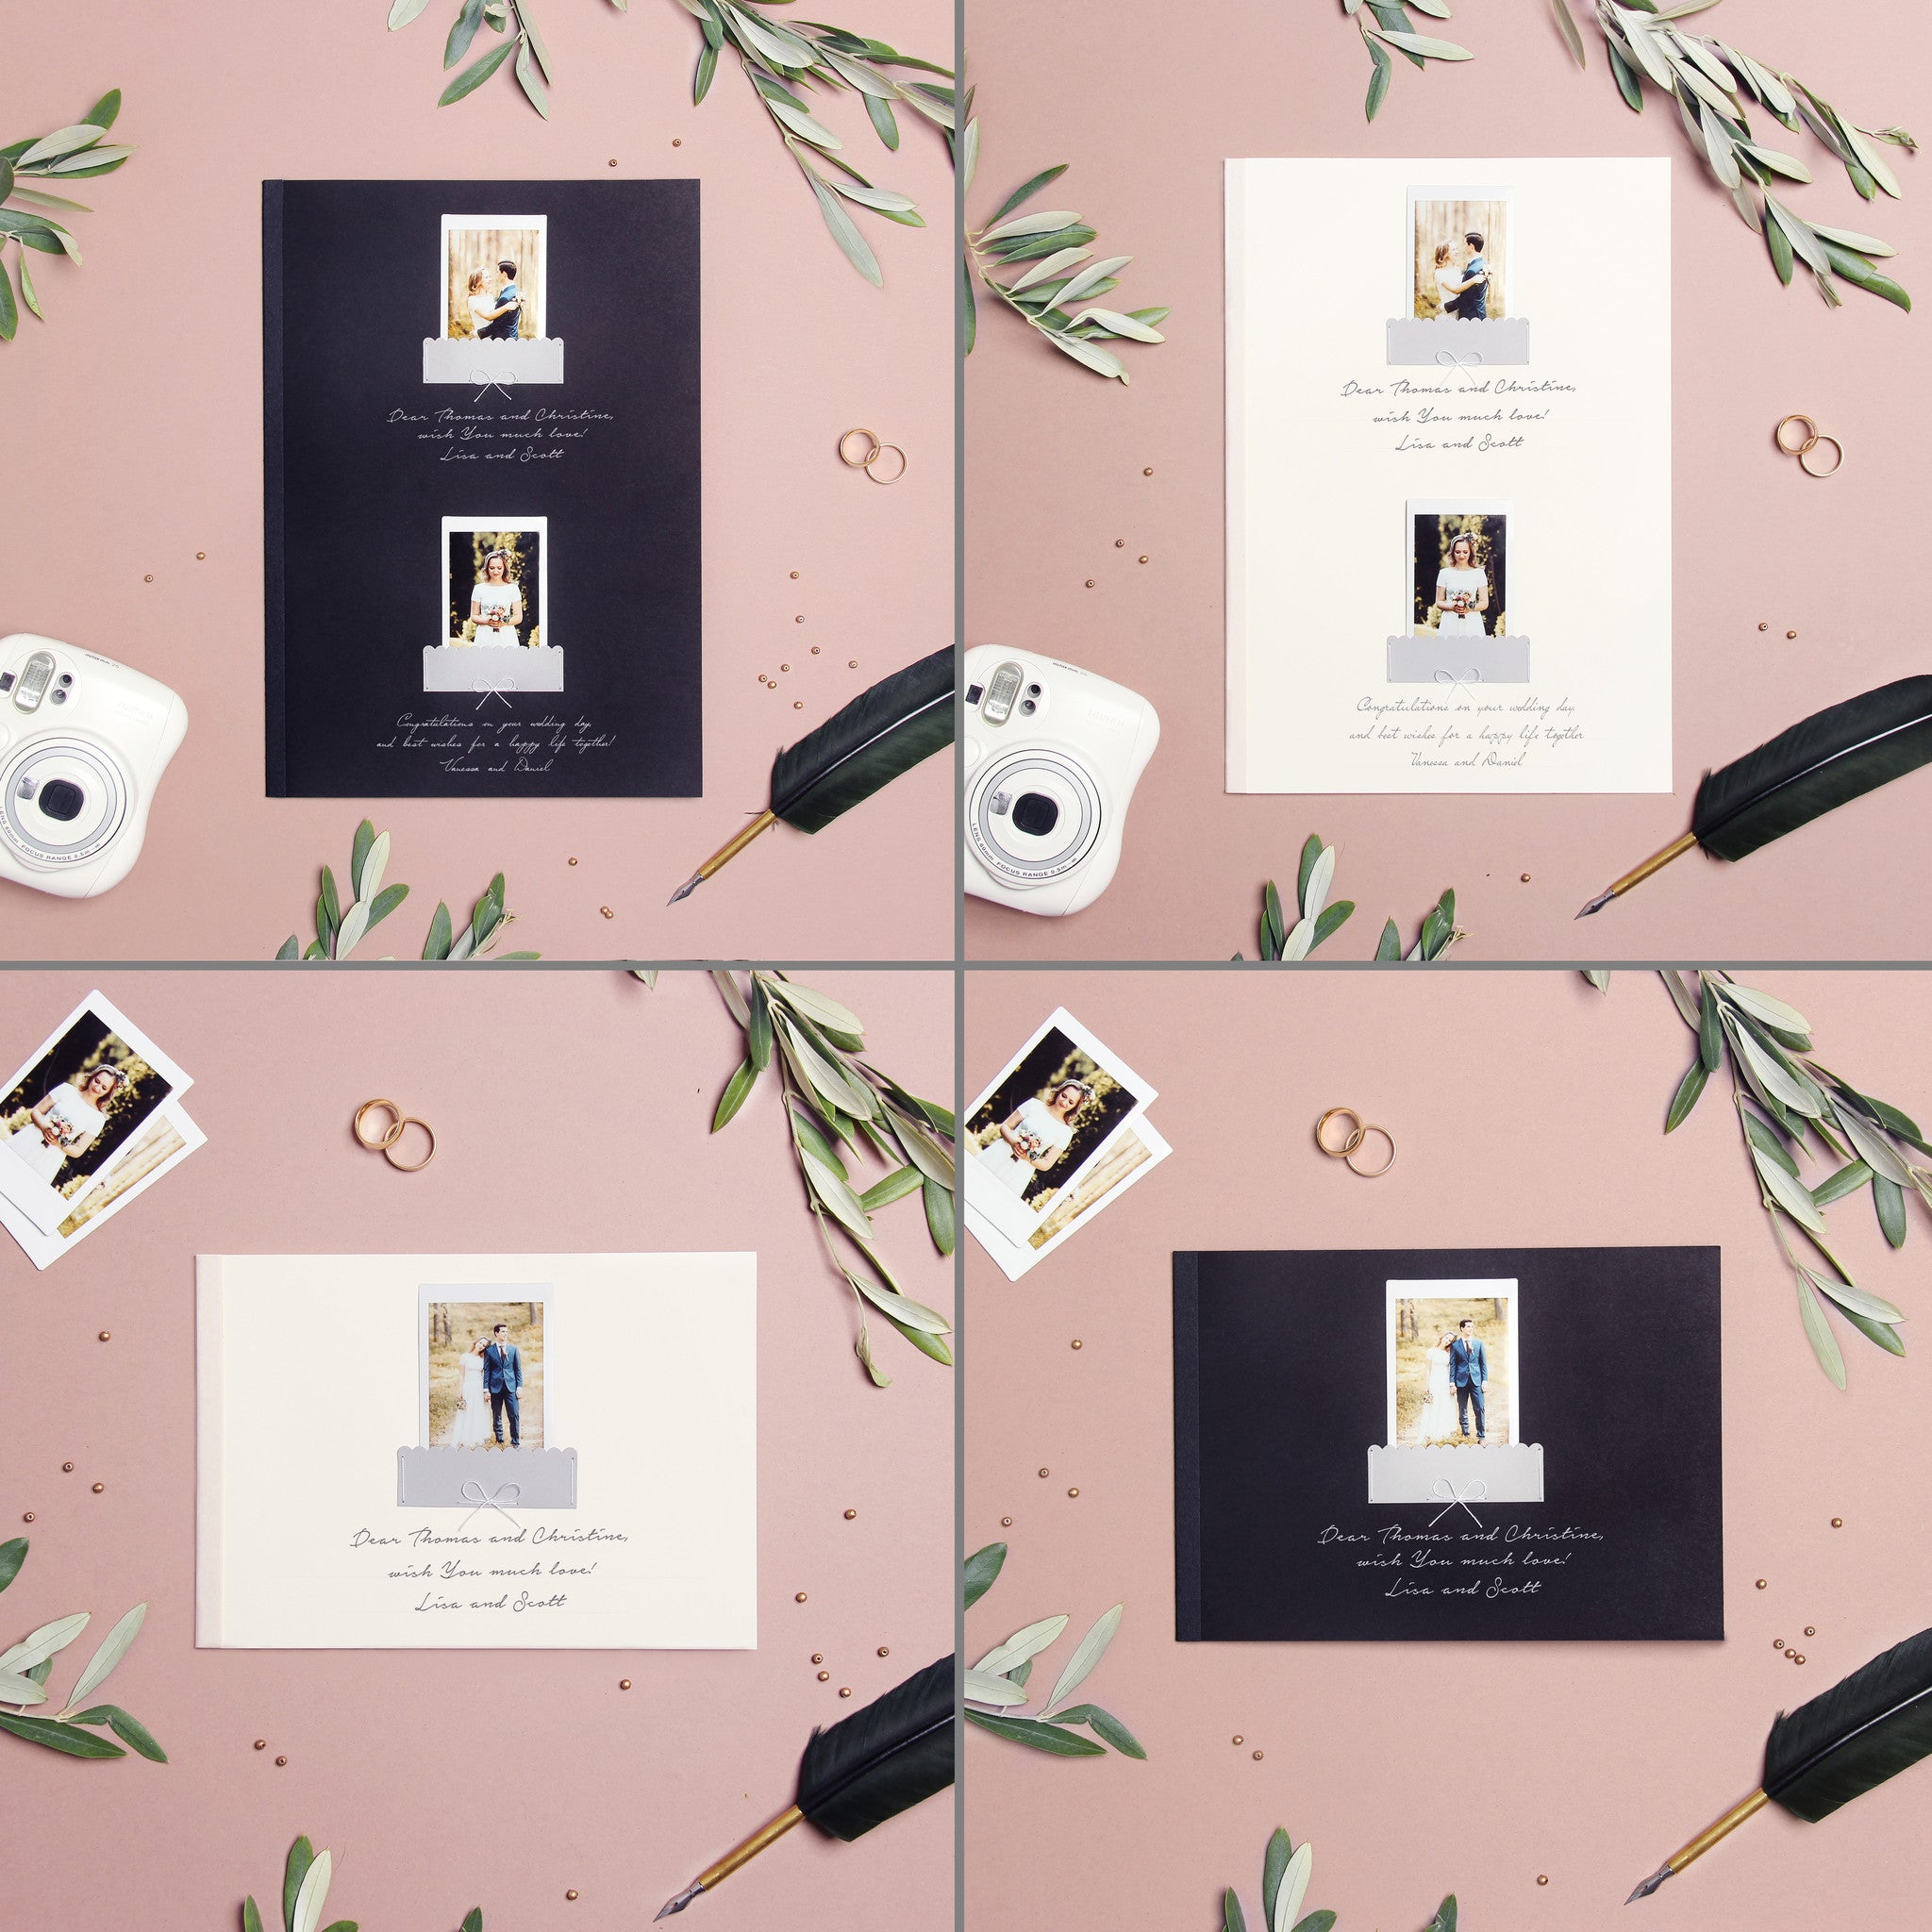 wedding guest book bridal shower album gray with gold foil lettering liumy